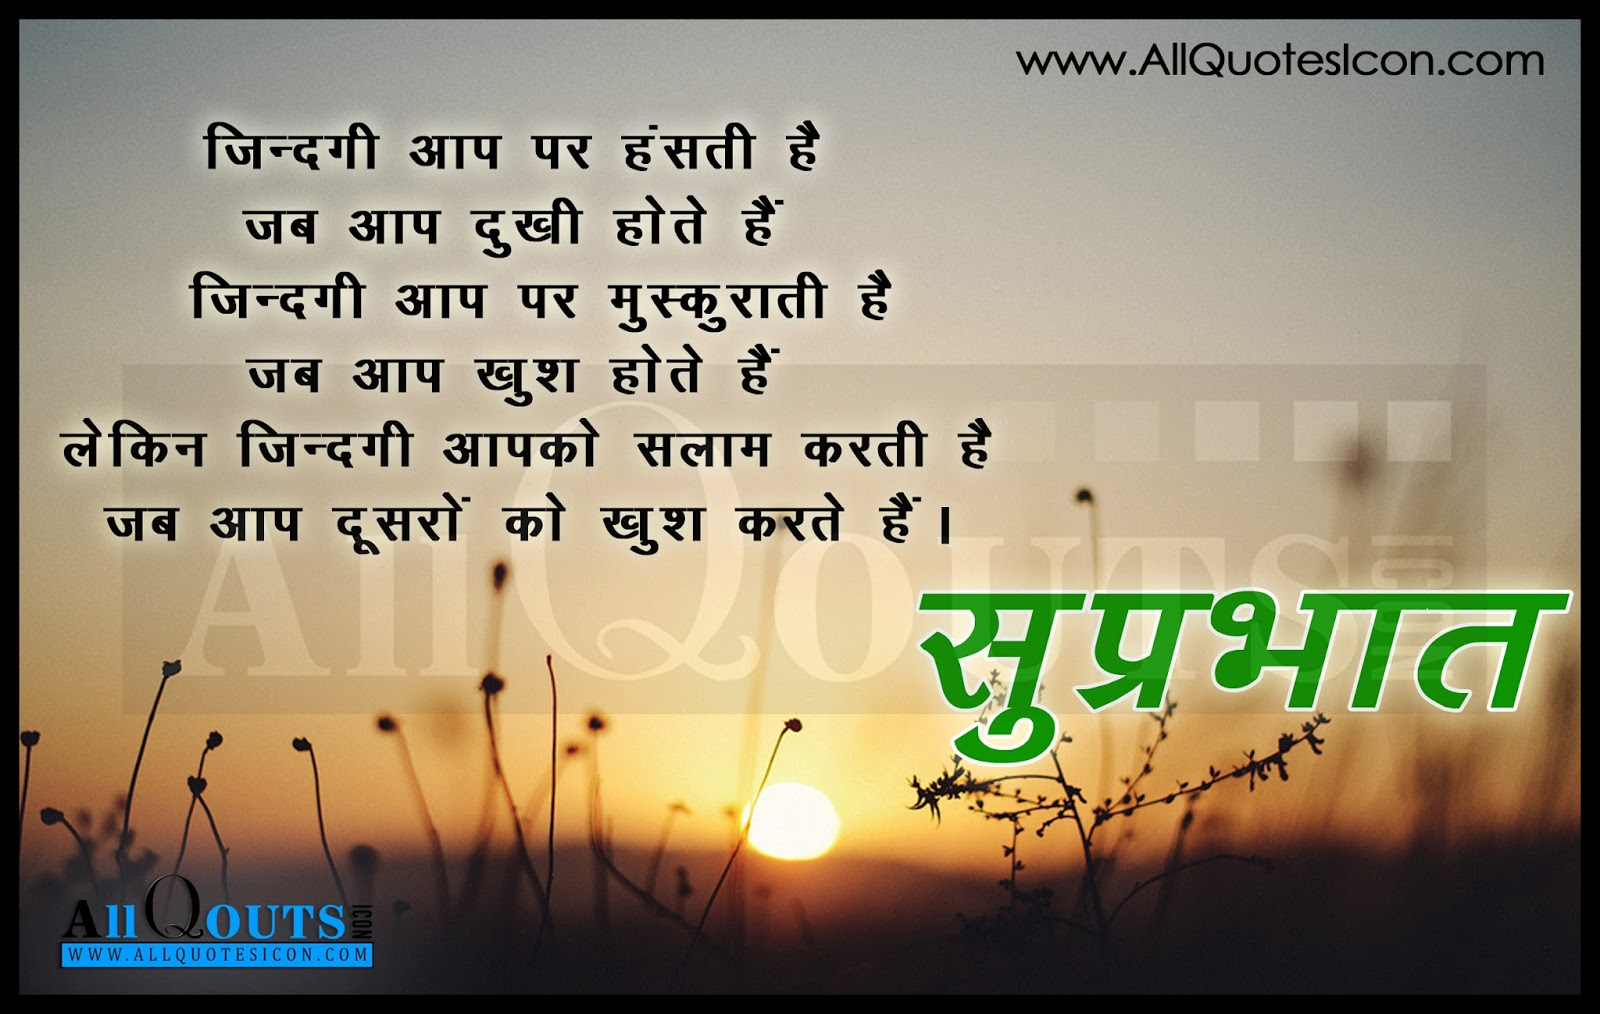 Positive Quotes About Love In Hindi With Good Morning Good